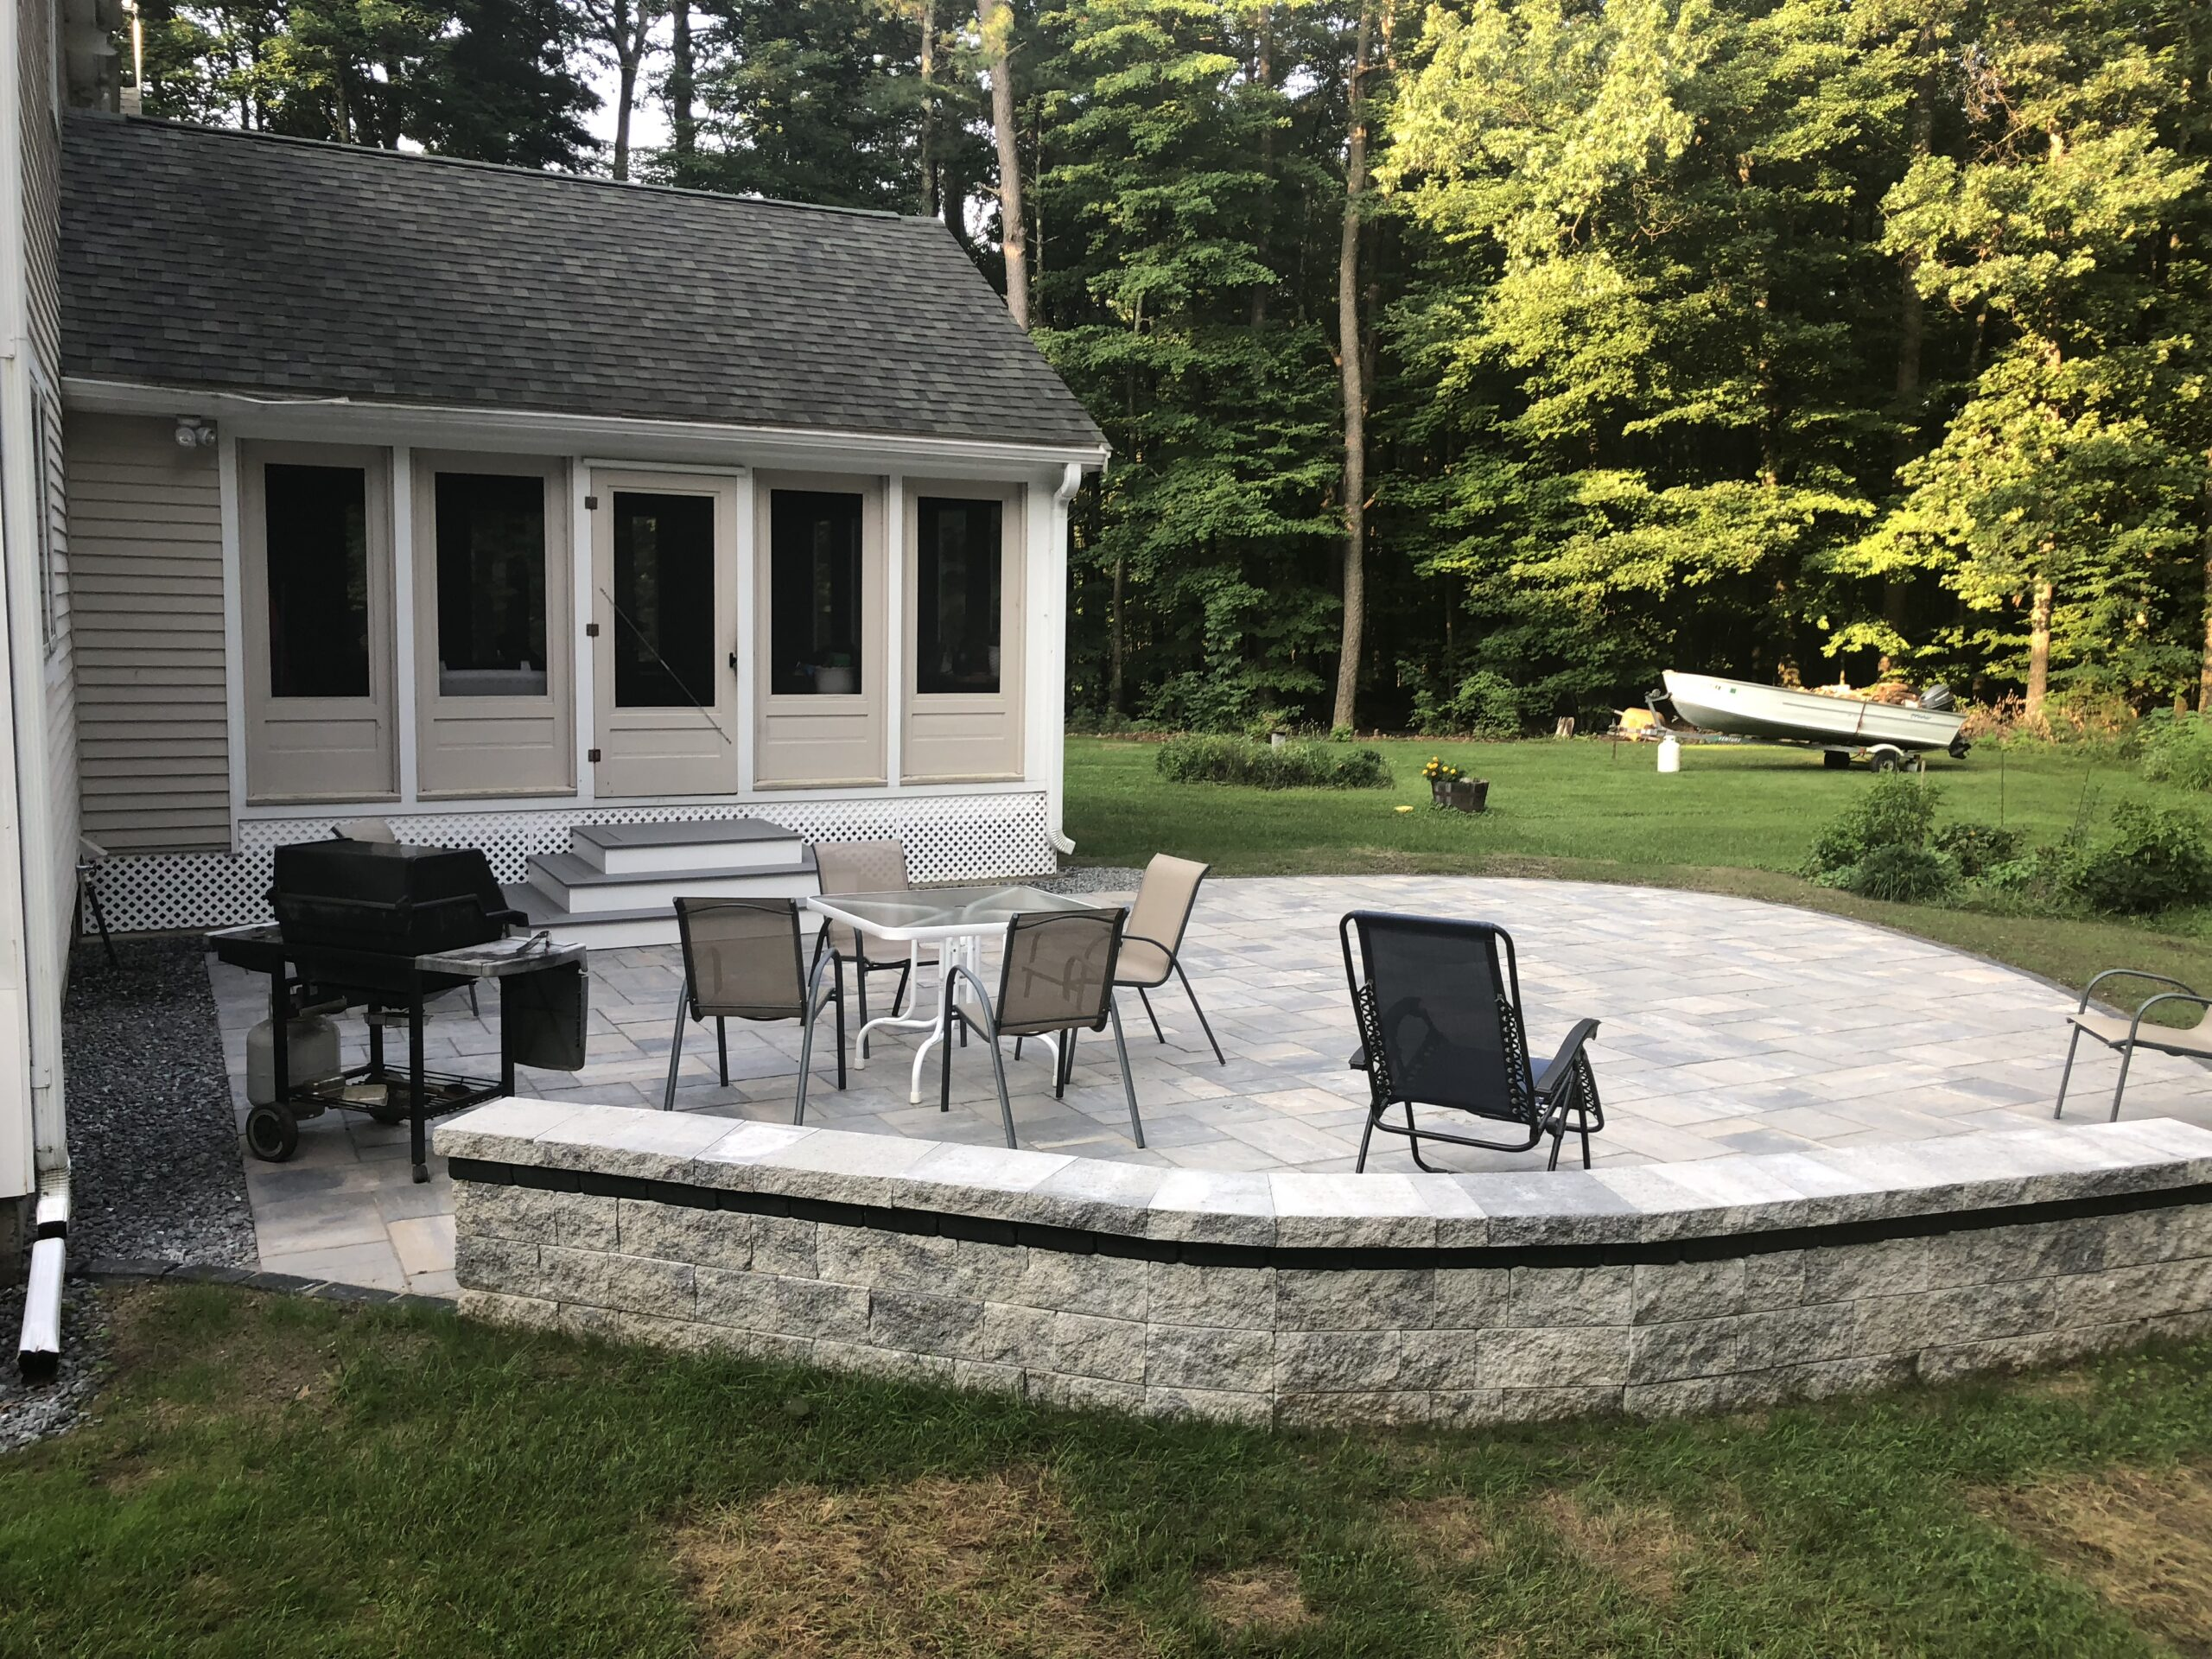 AFTER: CURVED STONE WALL FOR EXTRA SEATING SPACIOUS PATIO FOR RELAXING OR ENTERTAINING